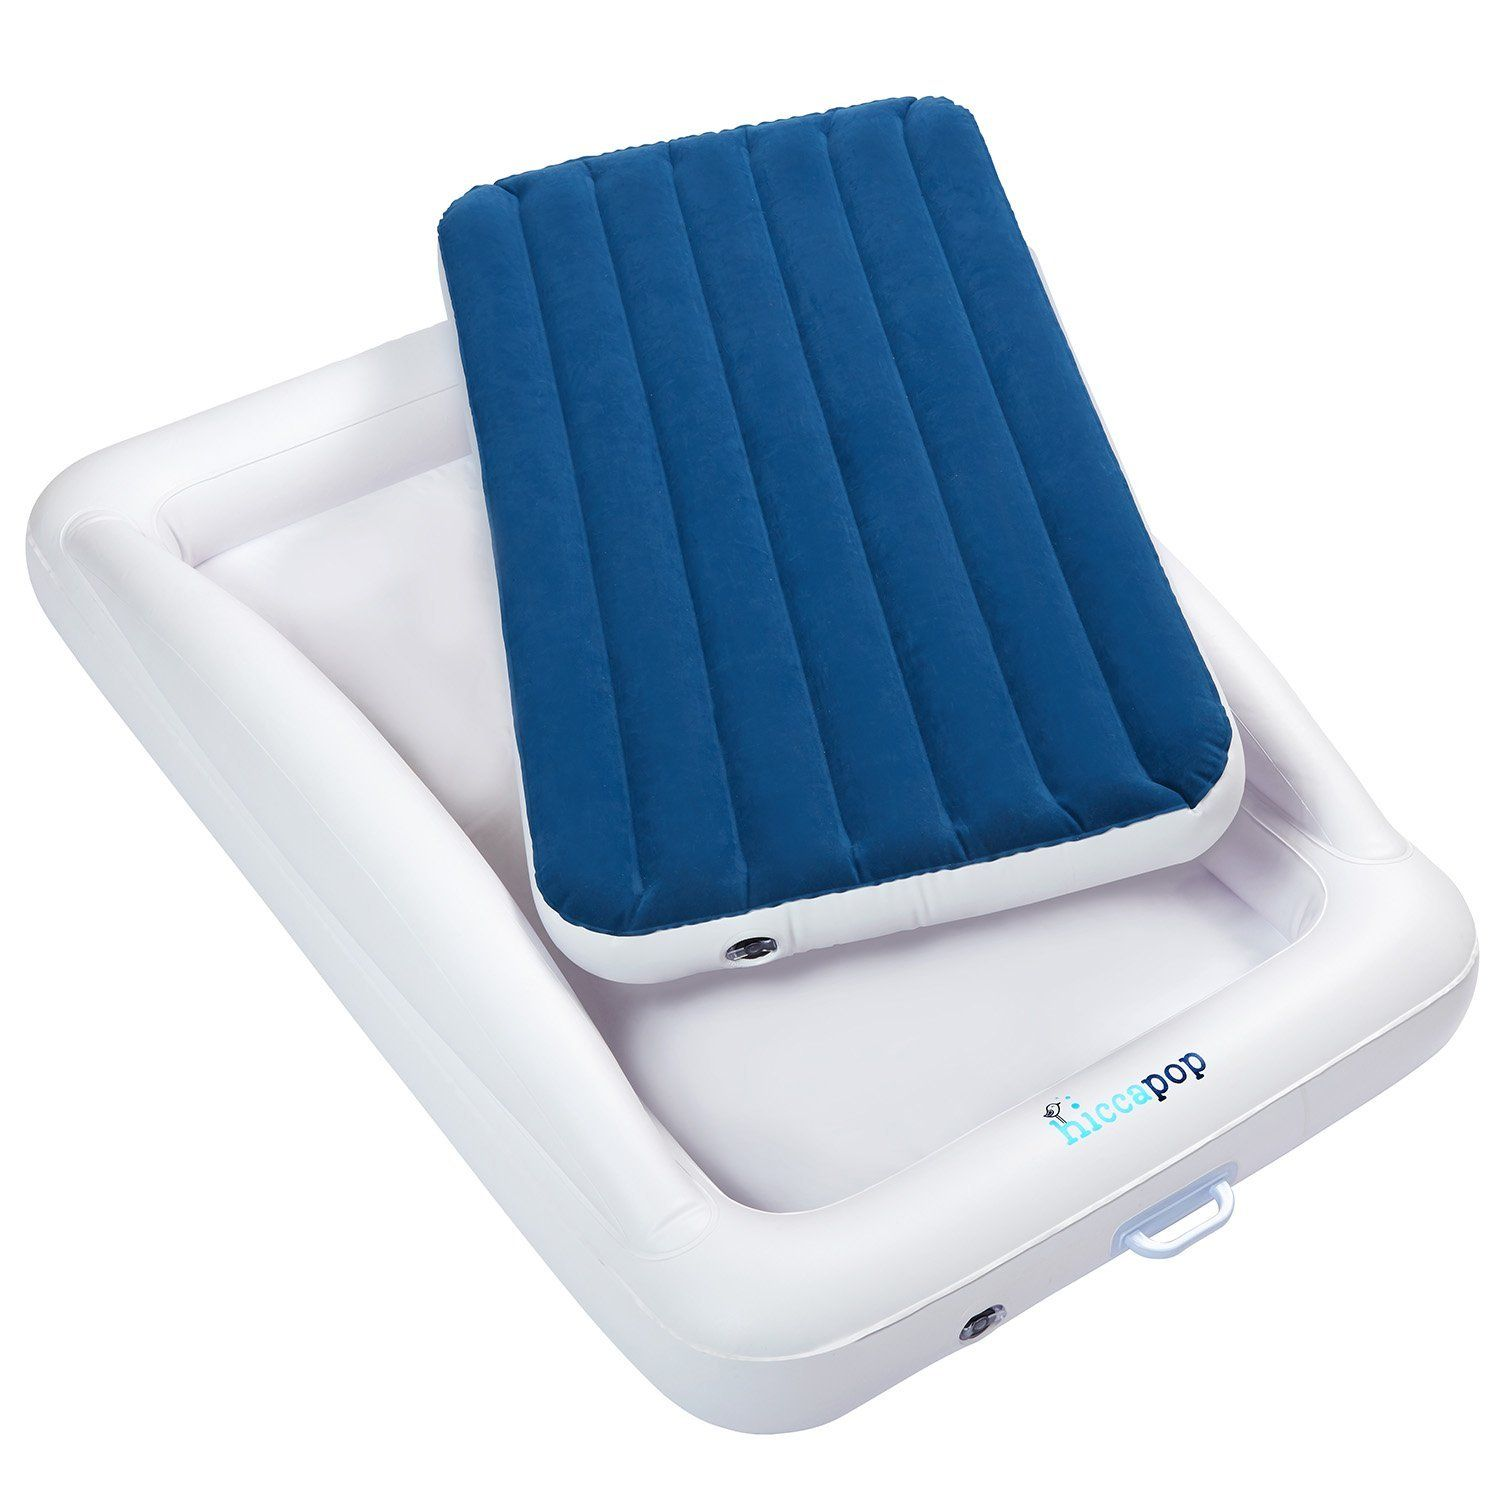 Toddler Bed Air Mattress.Pin By Bestebuys On Https Bestebuys Com Portable